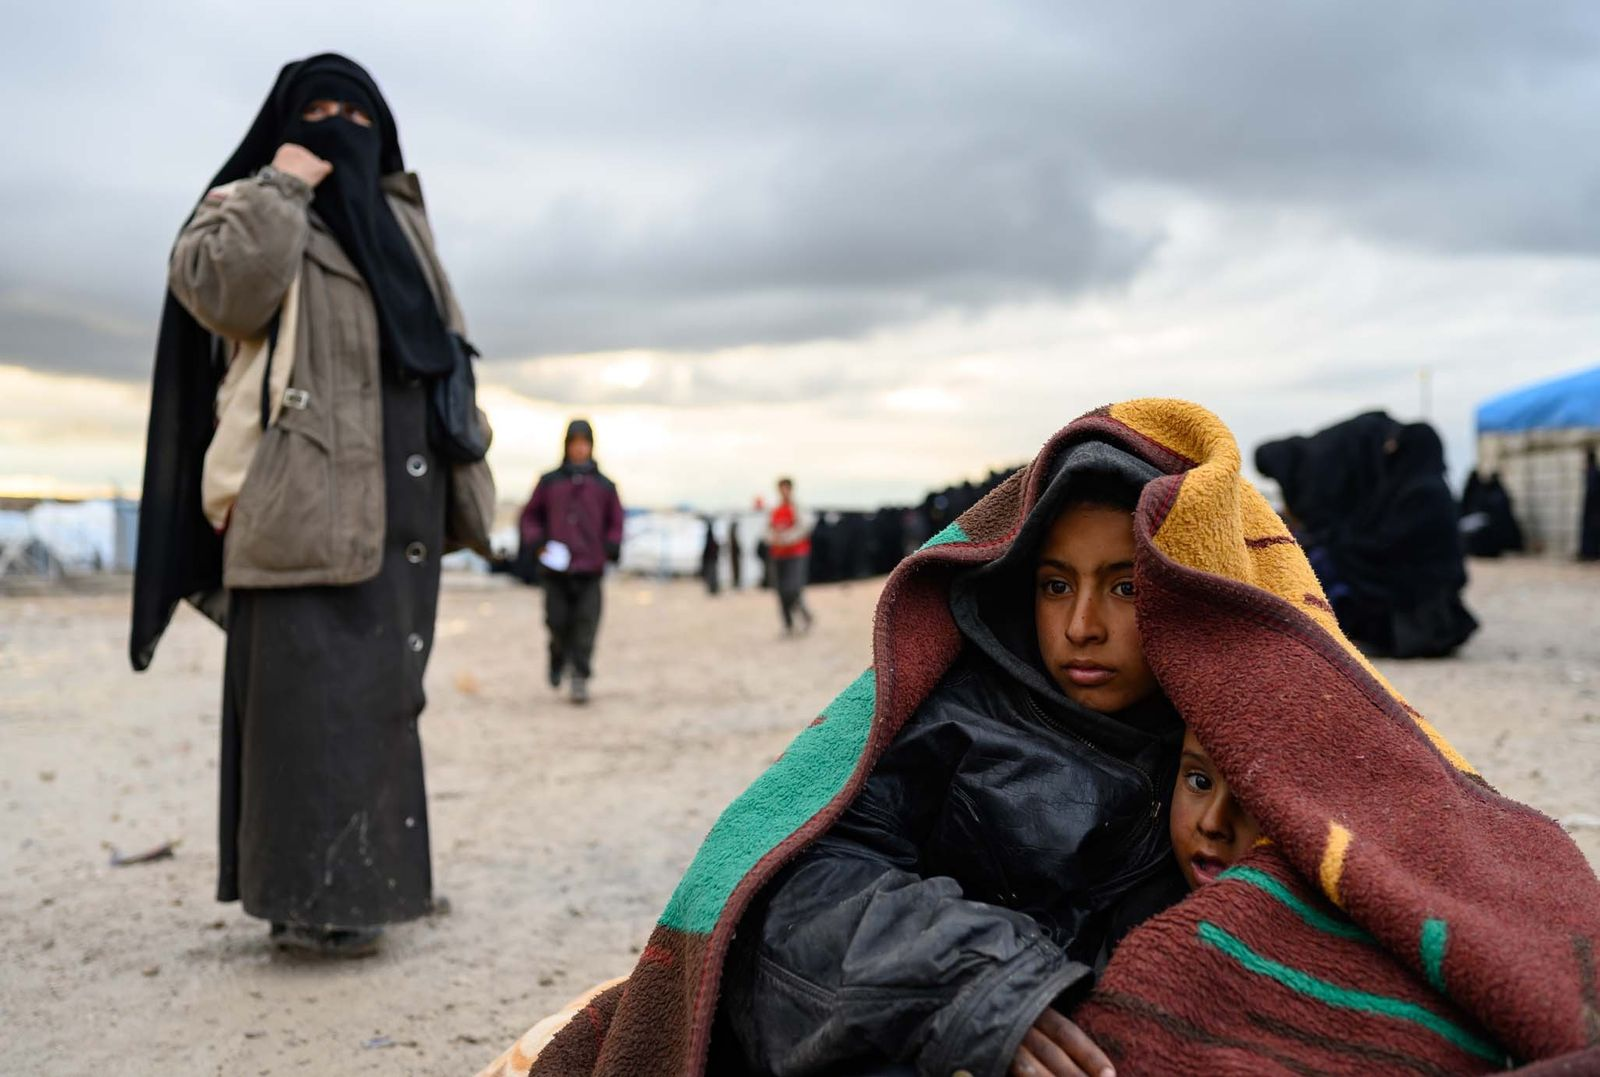 A humanitarian crisis emerges as ISIS falls in northern Syria